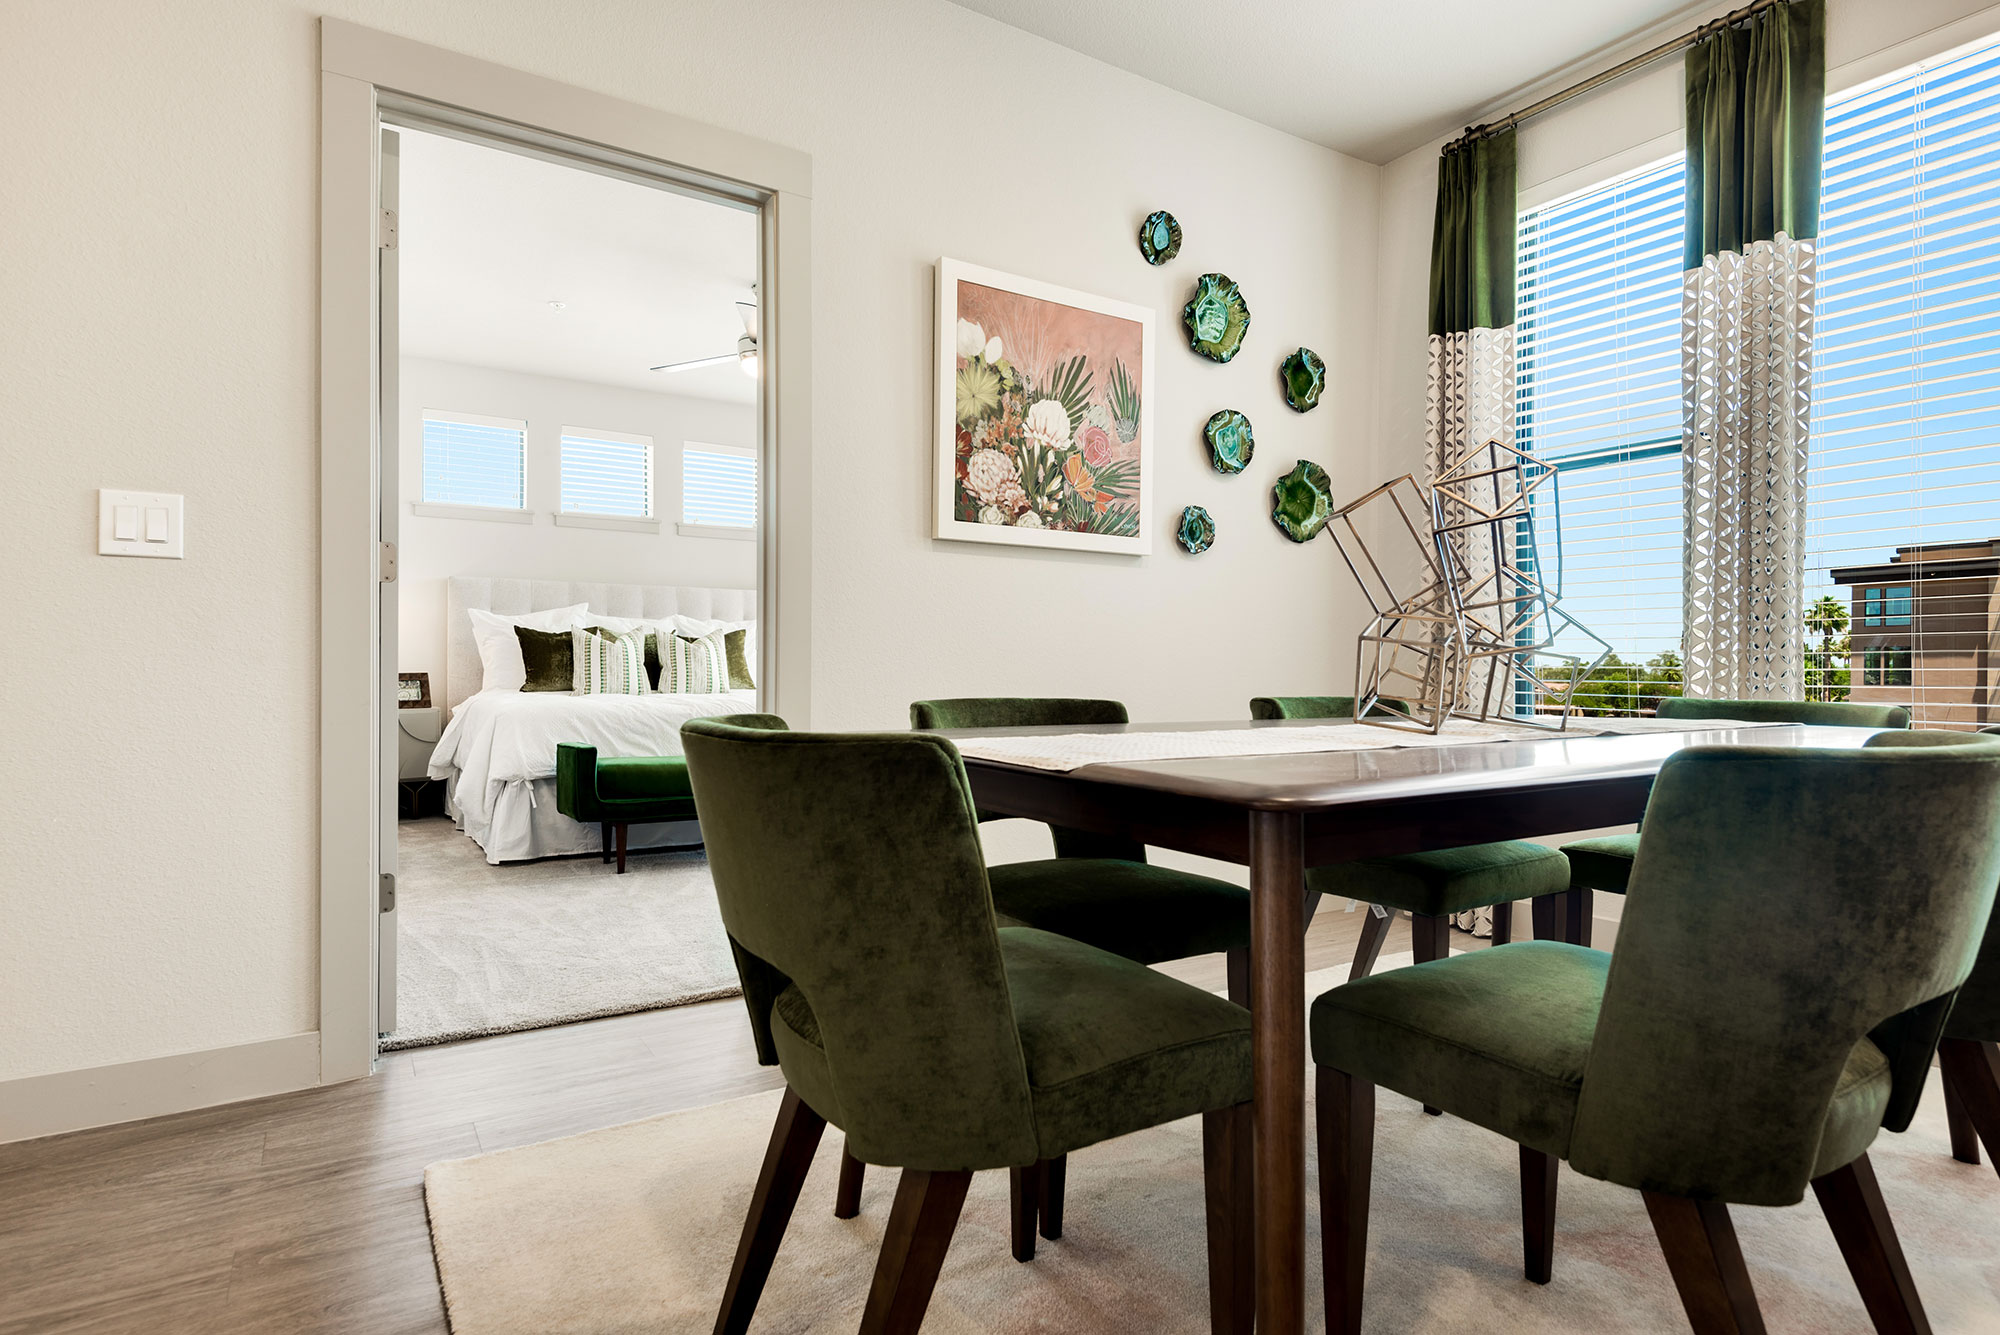 Riata - Model Unit - Dining room with view of bedroom